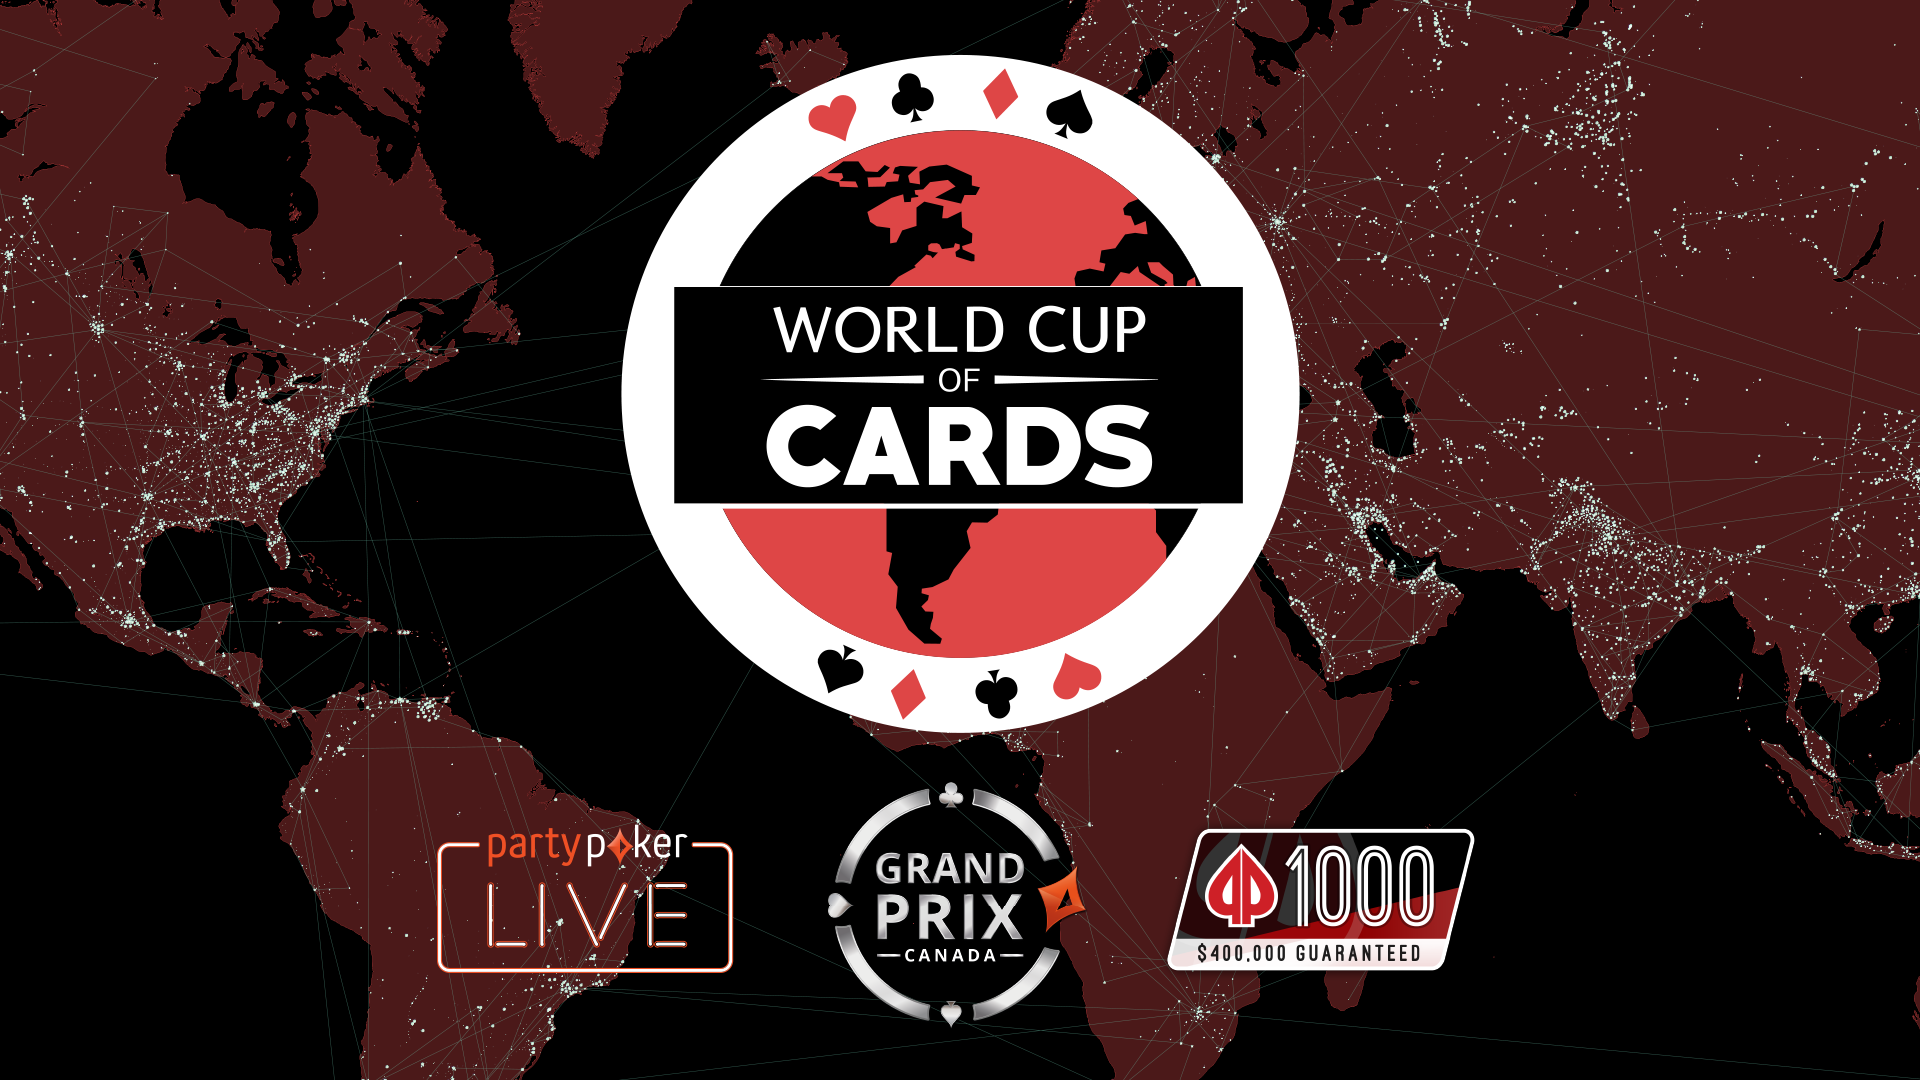 Announcing the World Cup of Cards